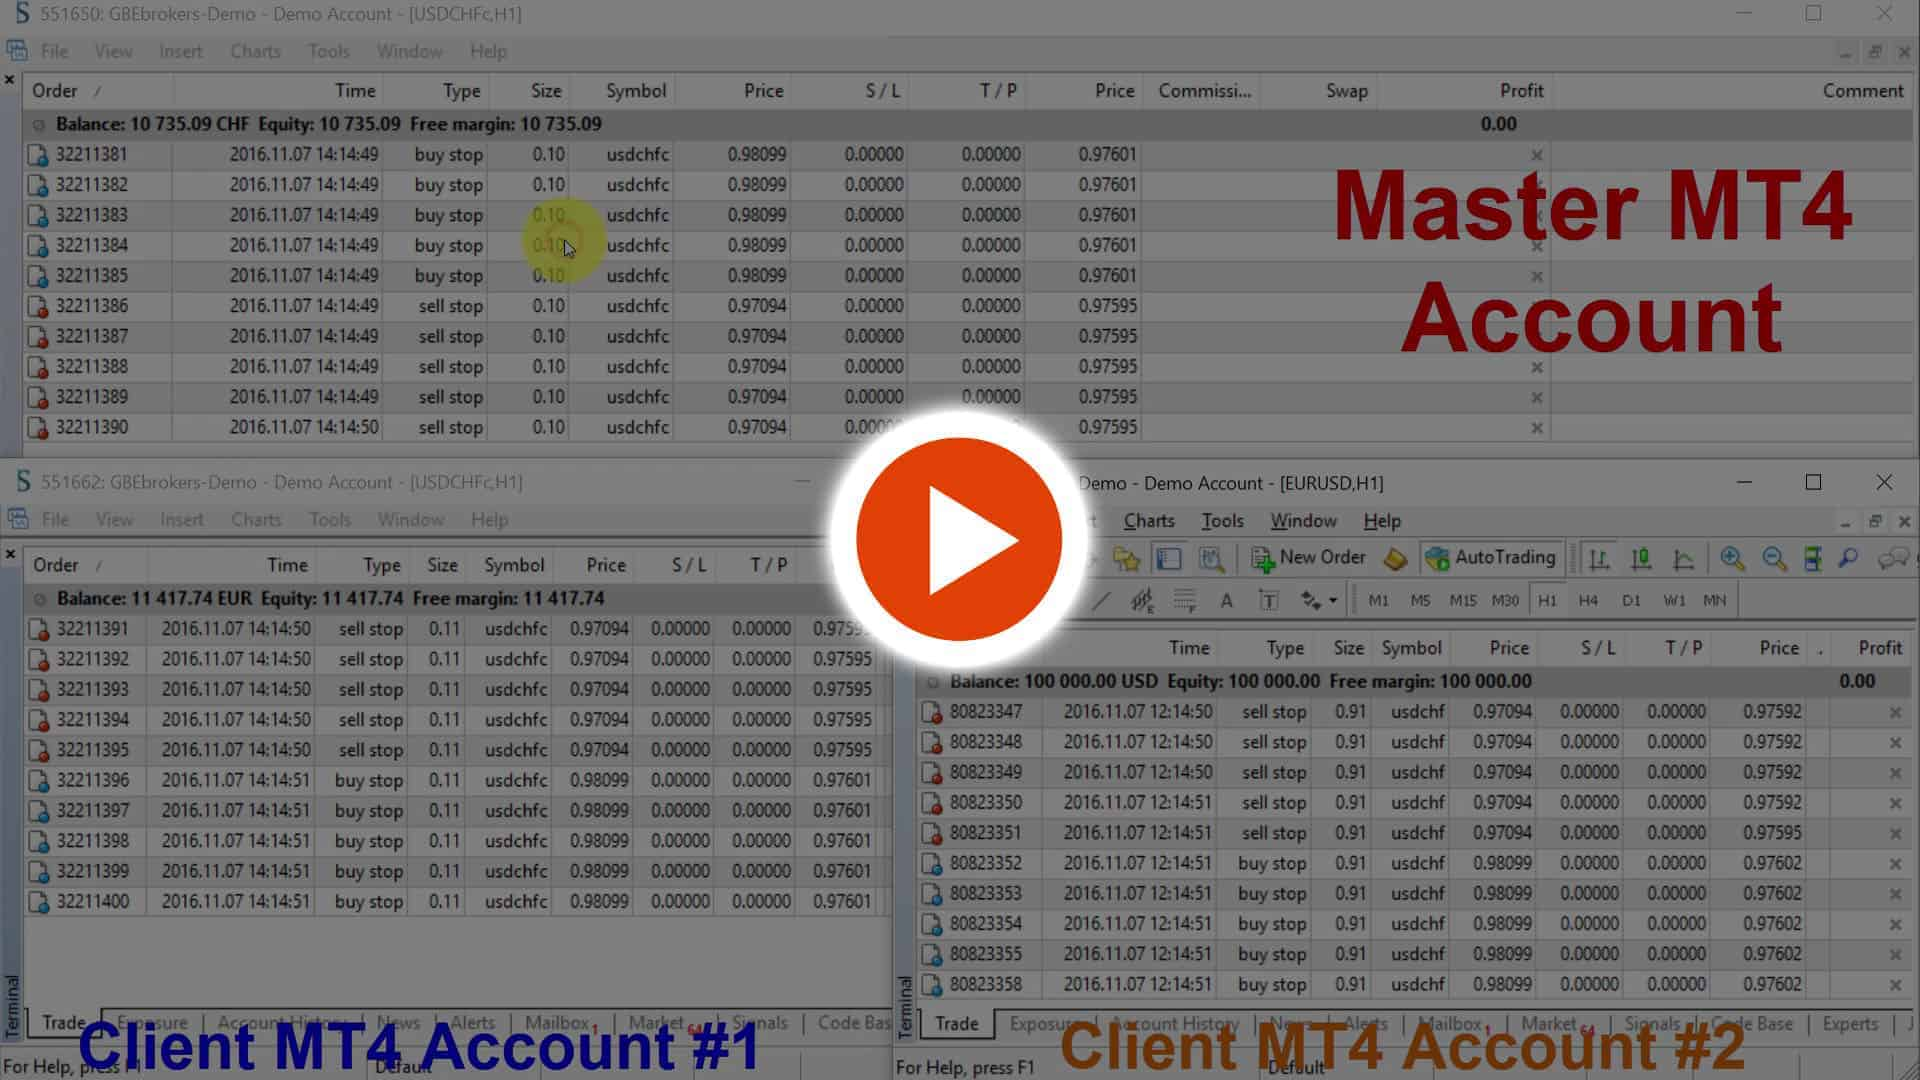 Fast Trade Copier on MetaTrader 4 (10 orders in 1 second)